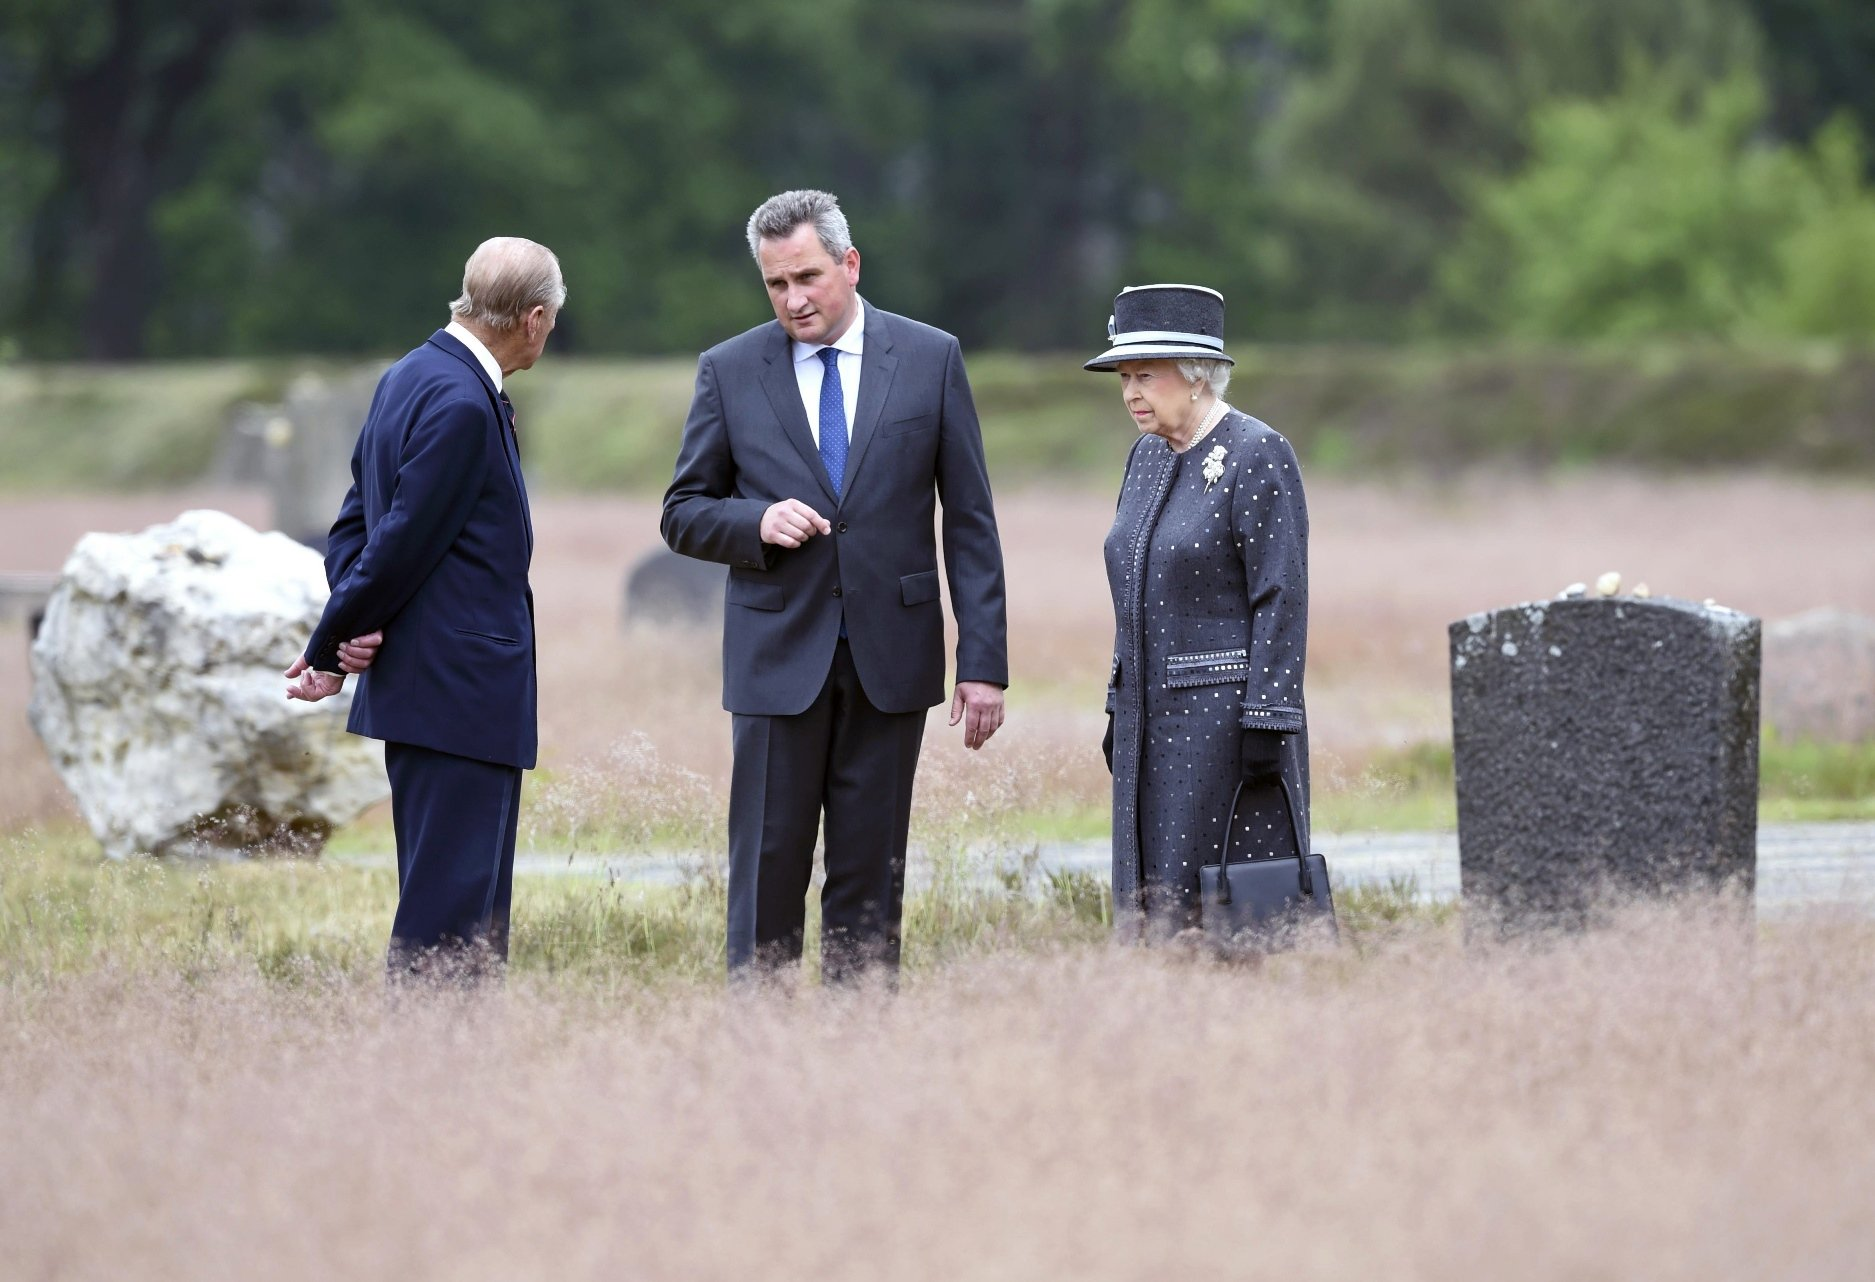 britain 039 s queen elizabeth ii and the duke of edinburg prince philip l are show the memorial site of former nazi concentration camp bergen belsen by memorial site director jens christian wagner c on june 26 2015 photo afp